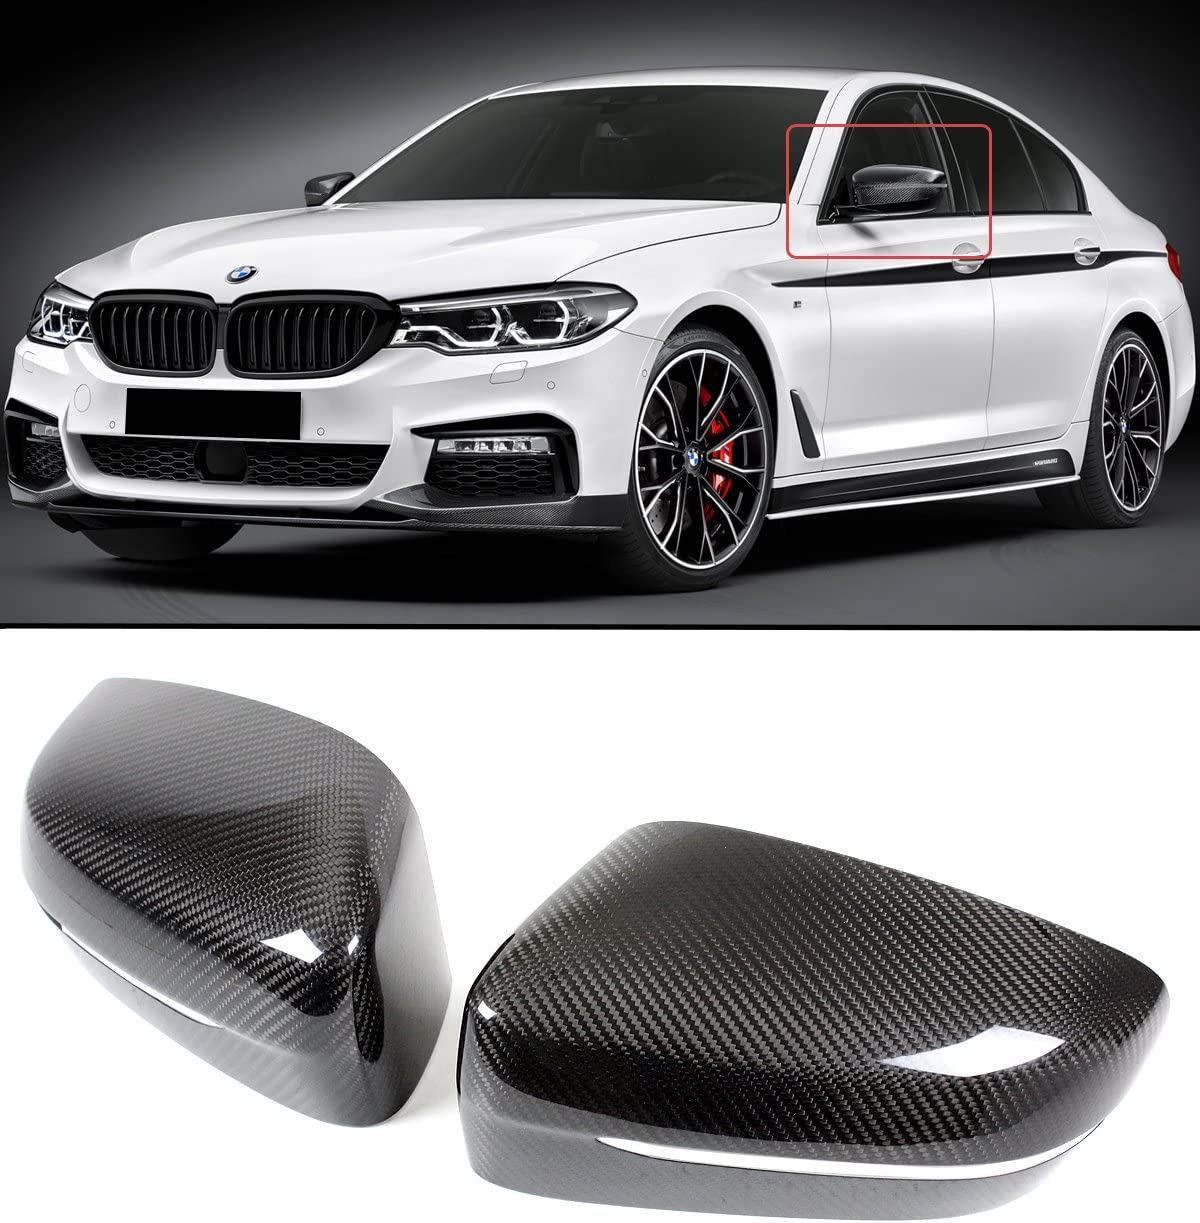 CarsCover Custom Fit 2012-2019 BMW 5 Series M5 528i 530i 530e 535i 535d 540i 550i Car Cover Heavy Duty Weatherproof Ultrashield Covers 528 530 535 540 550